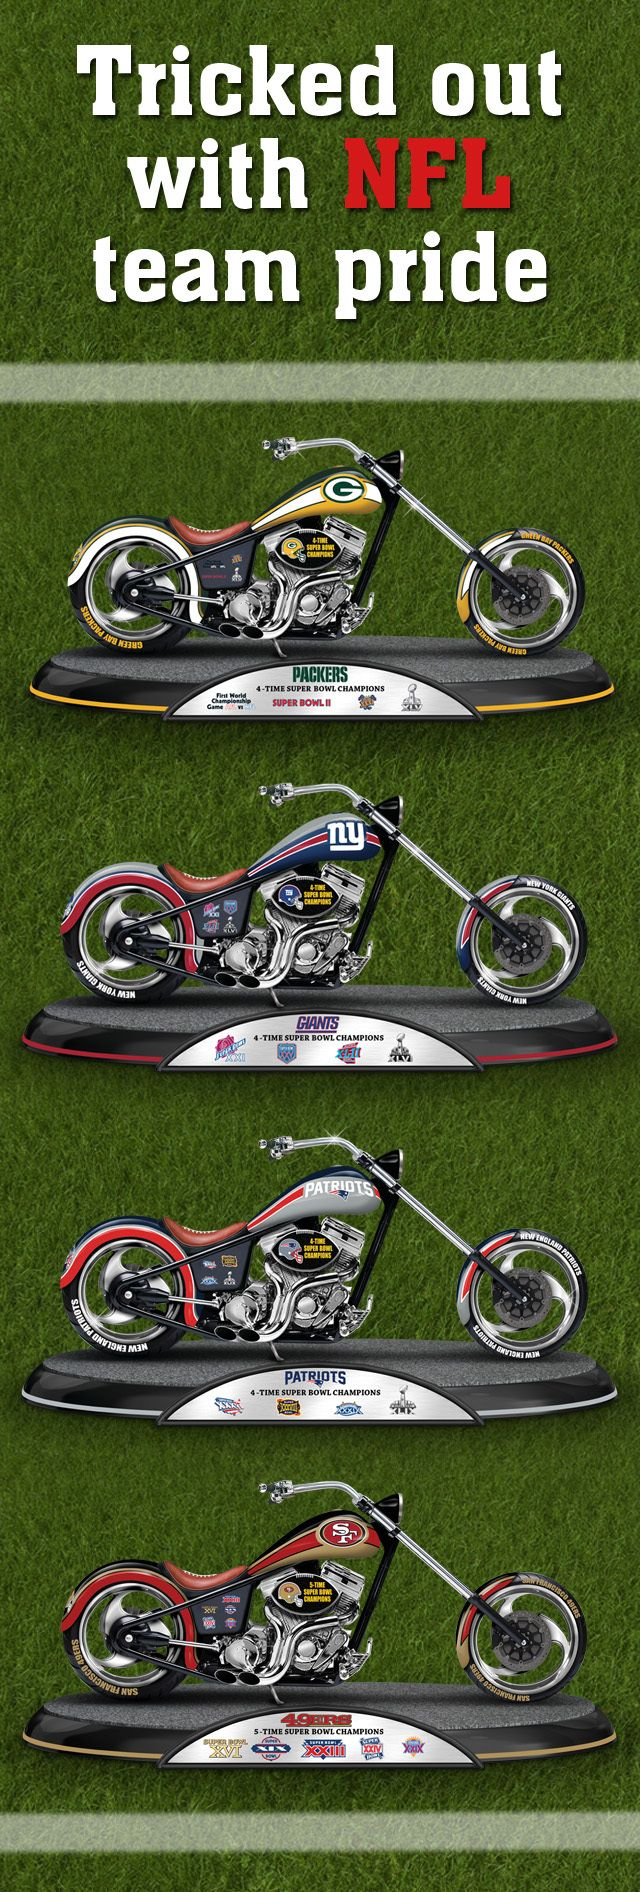 Show off your team pride with officially licensed NFL football motorcycle figurines! http://www.hamiltoncollection.com/search/Promotion+8215.html?cm_ven=SMO-HAM&cm_cat=Pinterest&cm_pla=direct&cm_ite=NFLMotorcycles1115&utm_source=SMO-HAM&utm_medium=Pinterest&utm_campaign=direct&utm_term=NFLMotorcycles1115